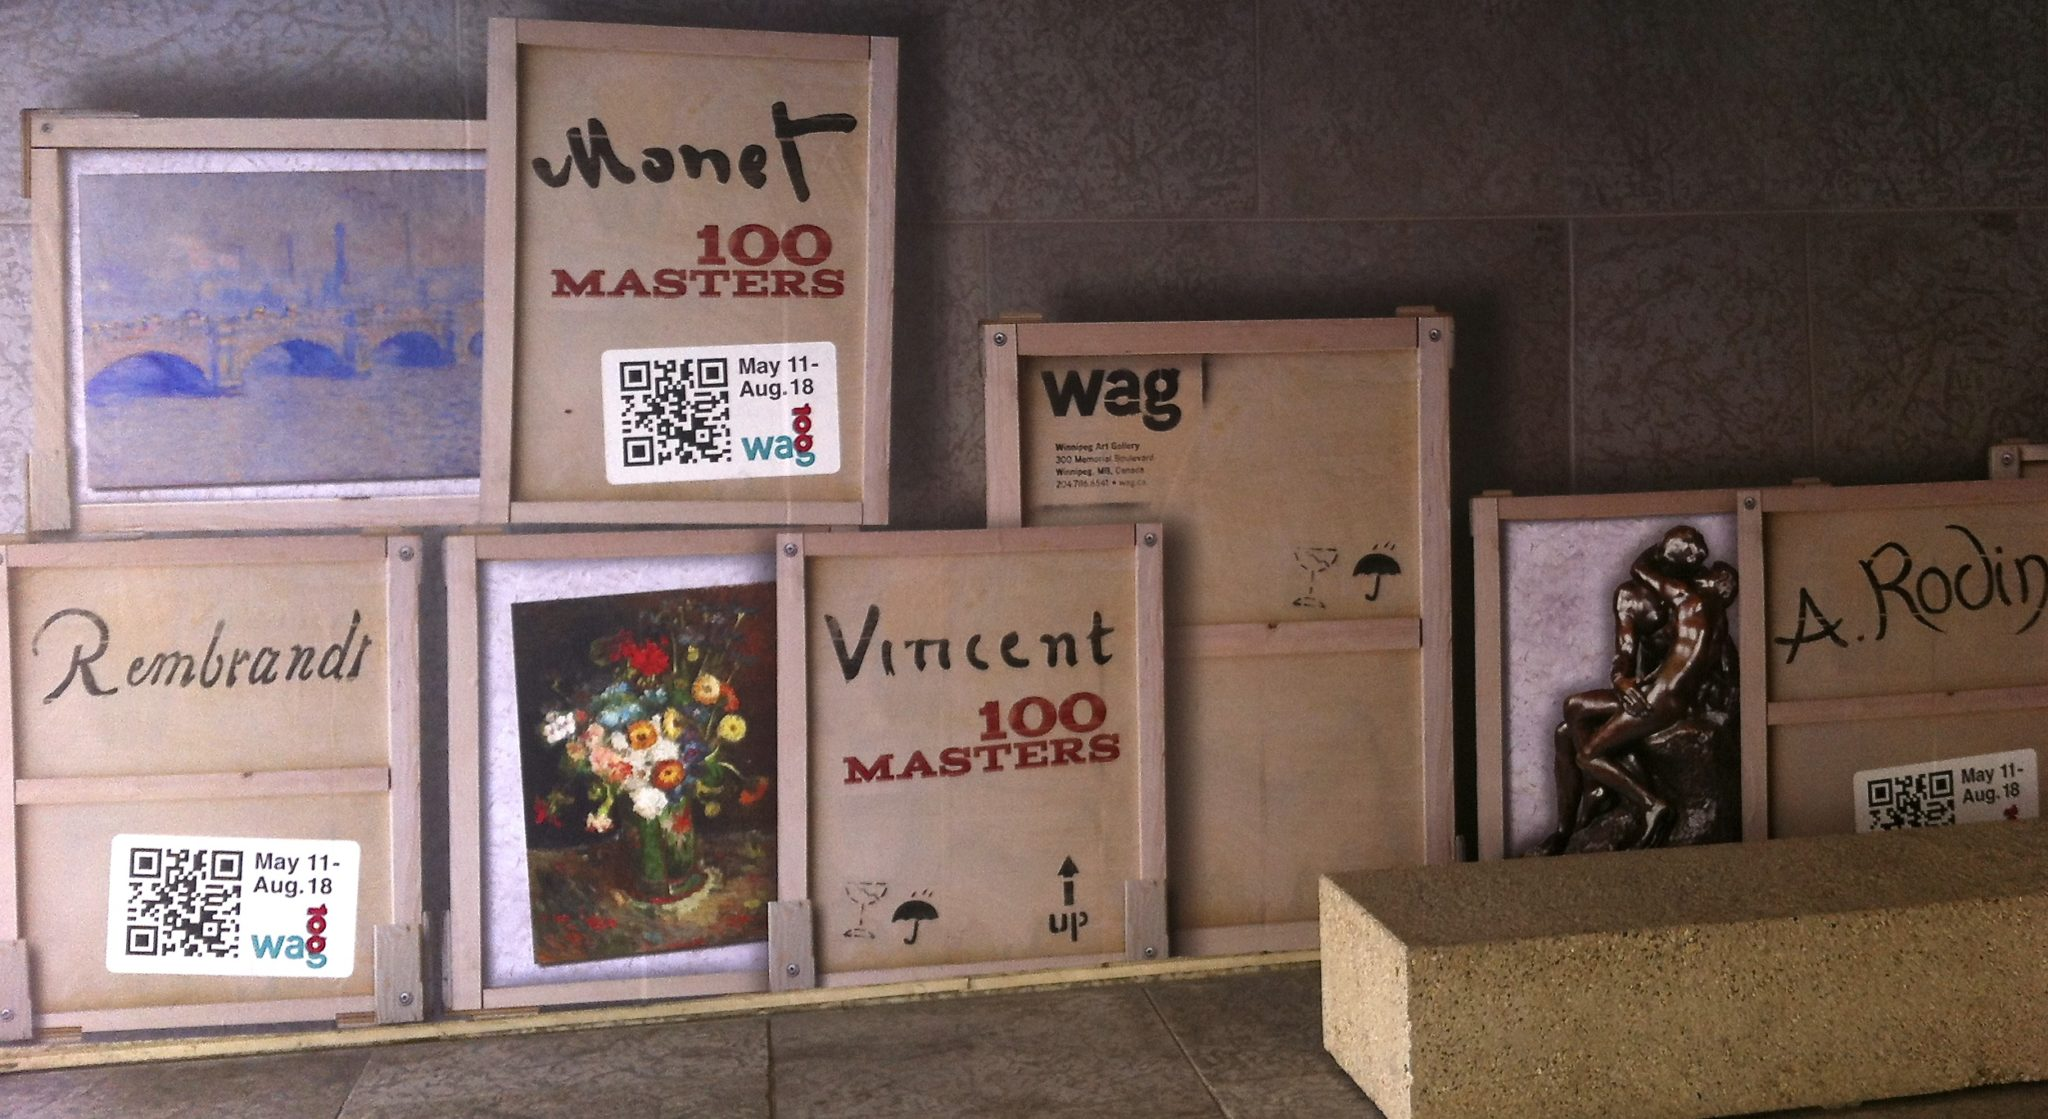 Entryway at the WAG 100 Masters.